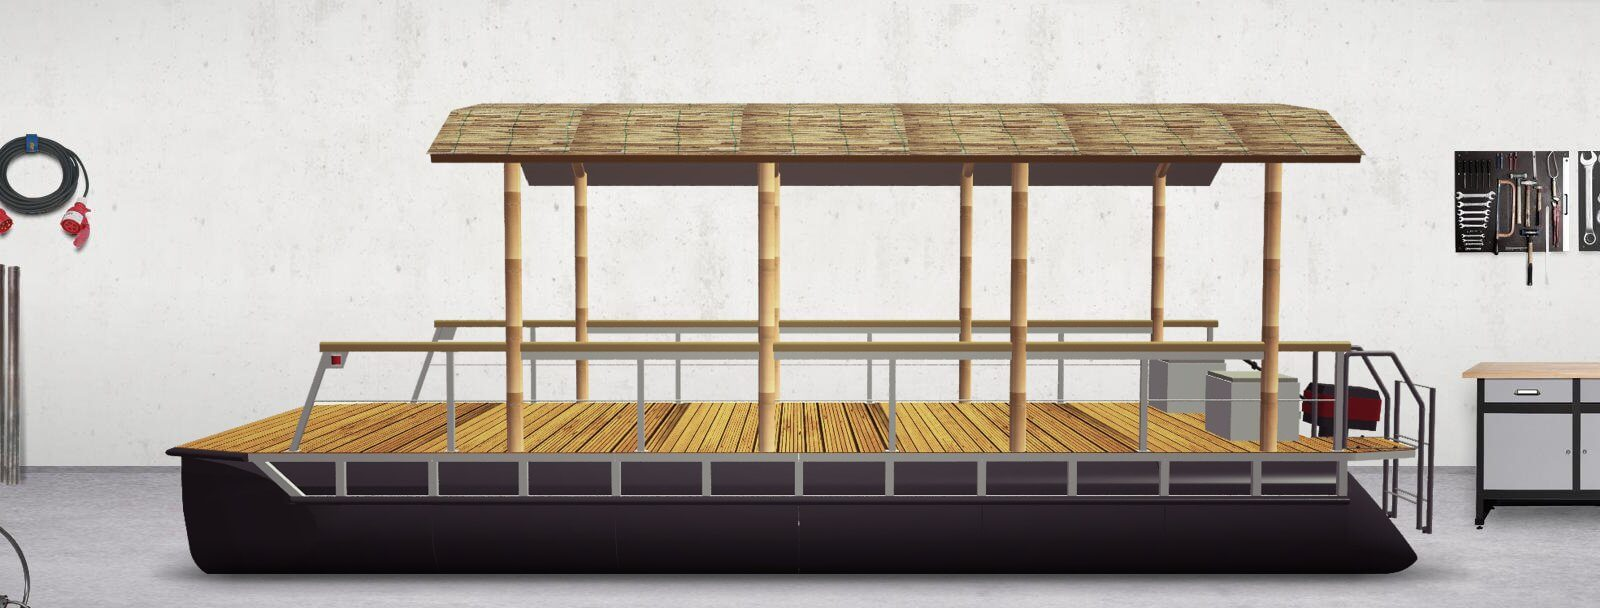 pontoon boat with round roof (complete finished)